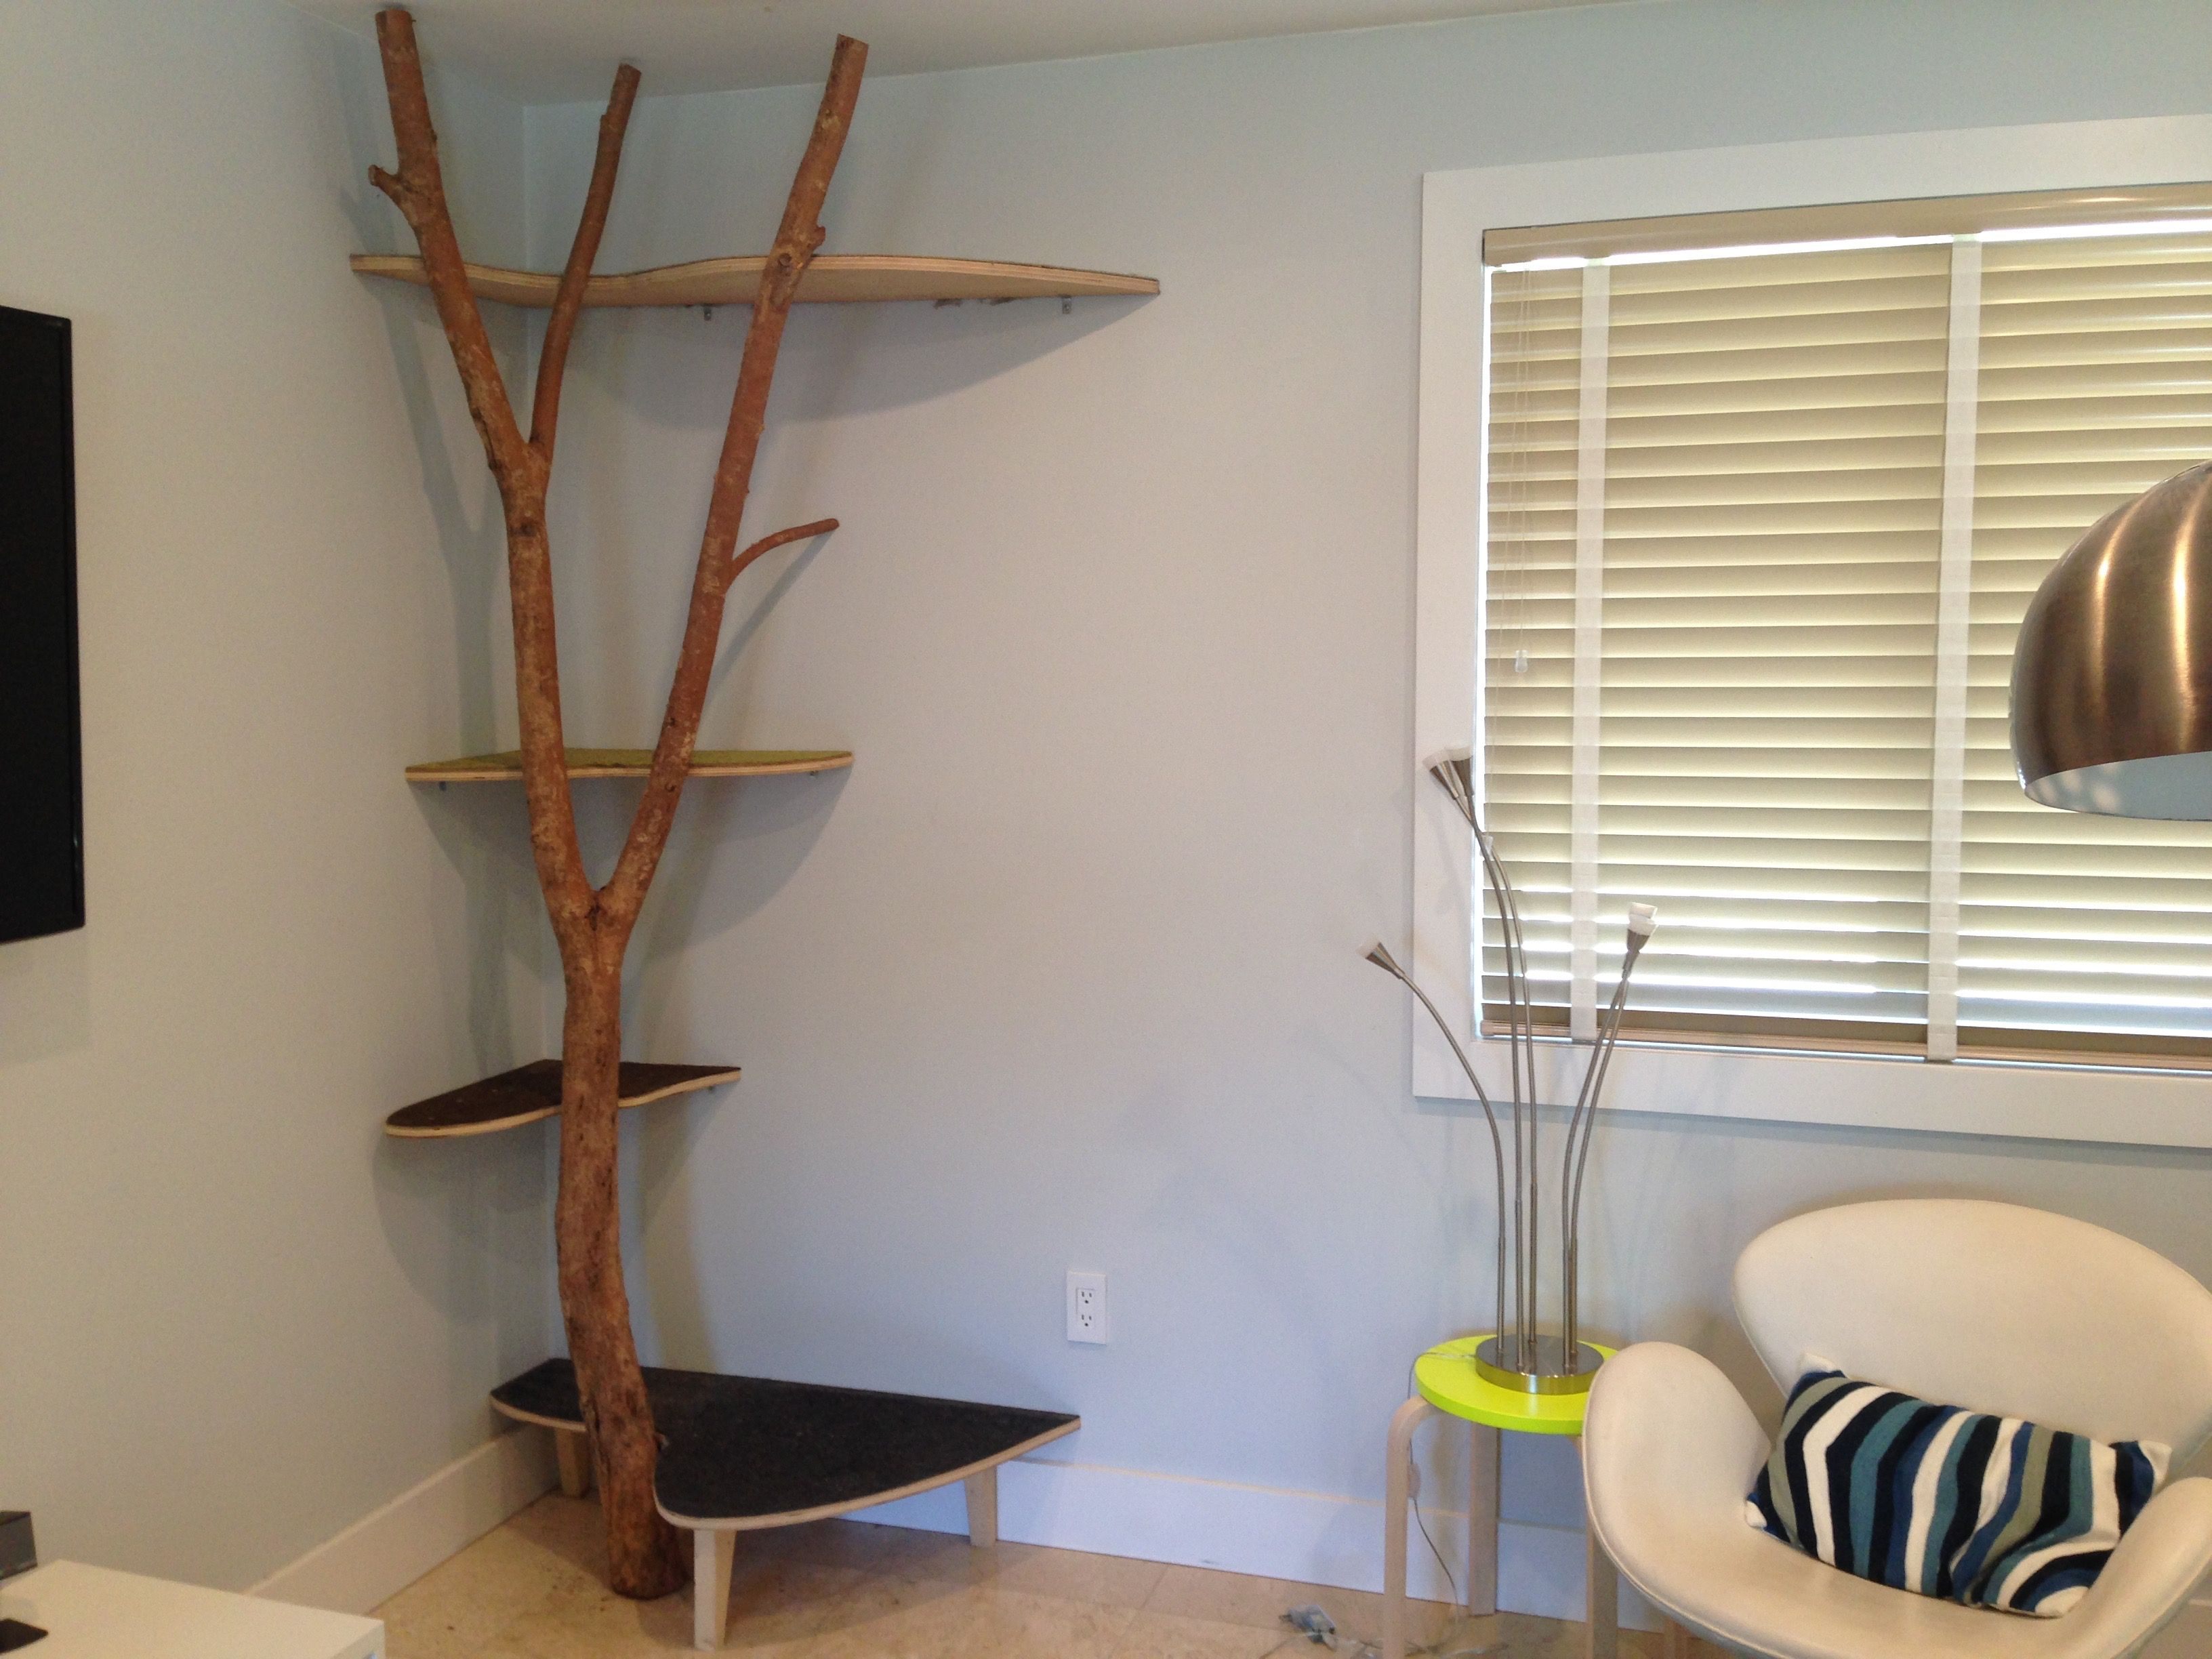 New House, Same Cat Tree! We Built This From A Real Tree Branch And